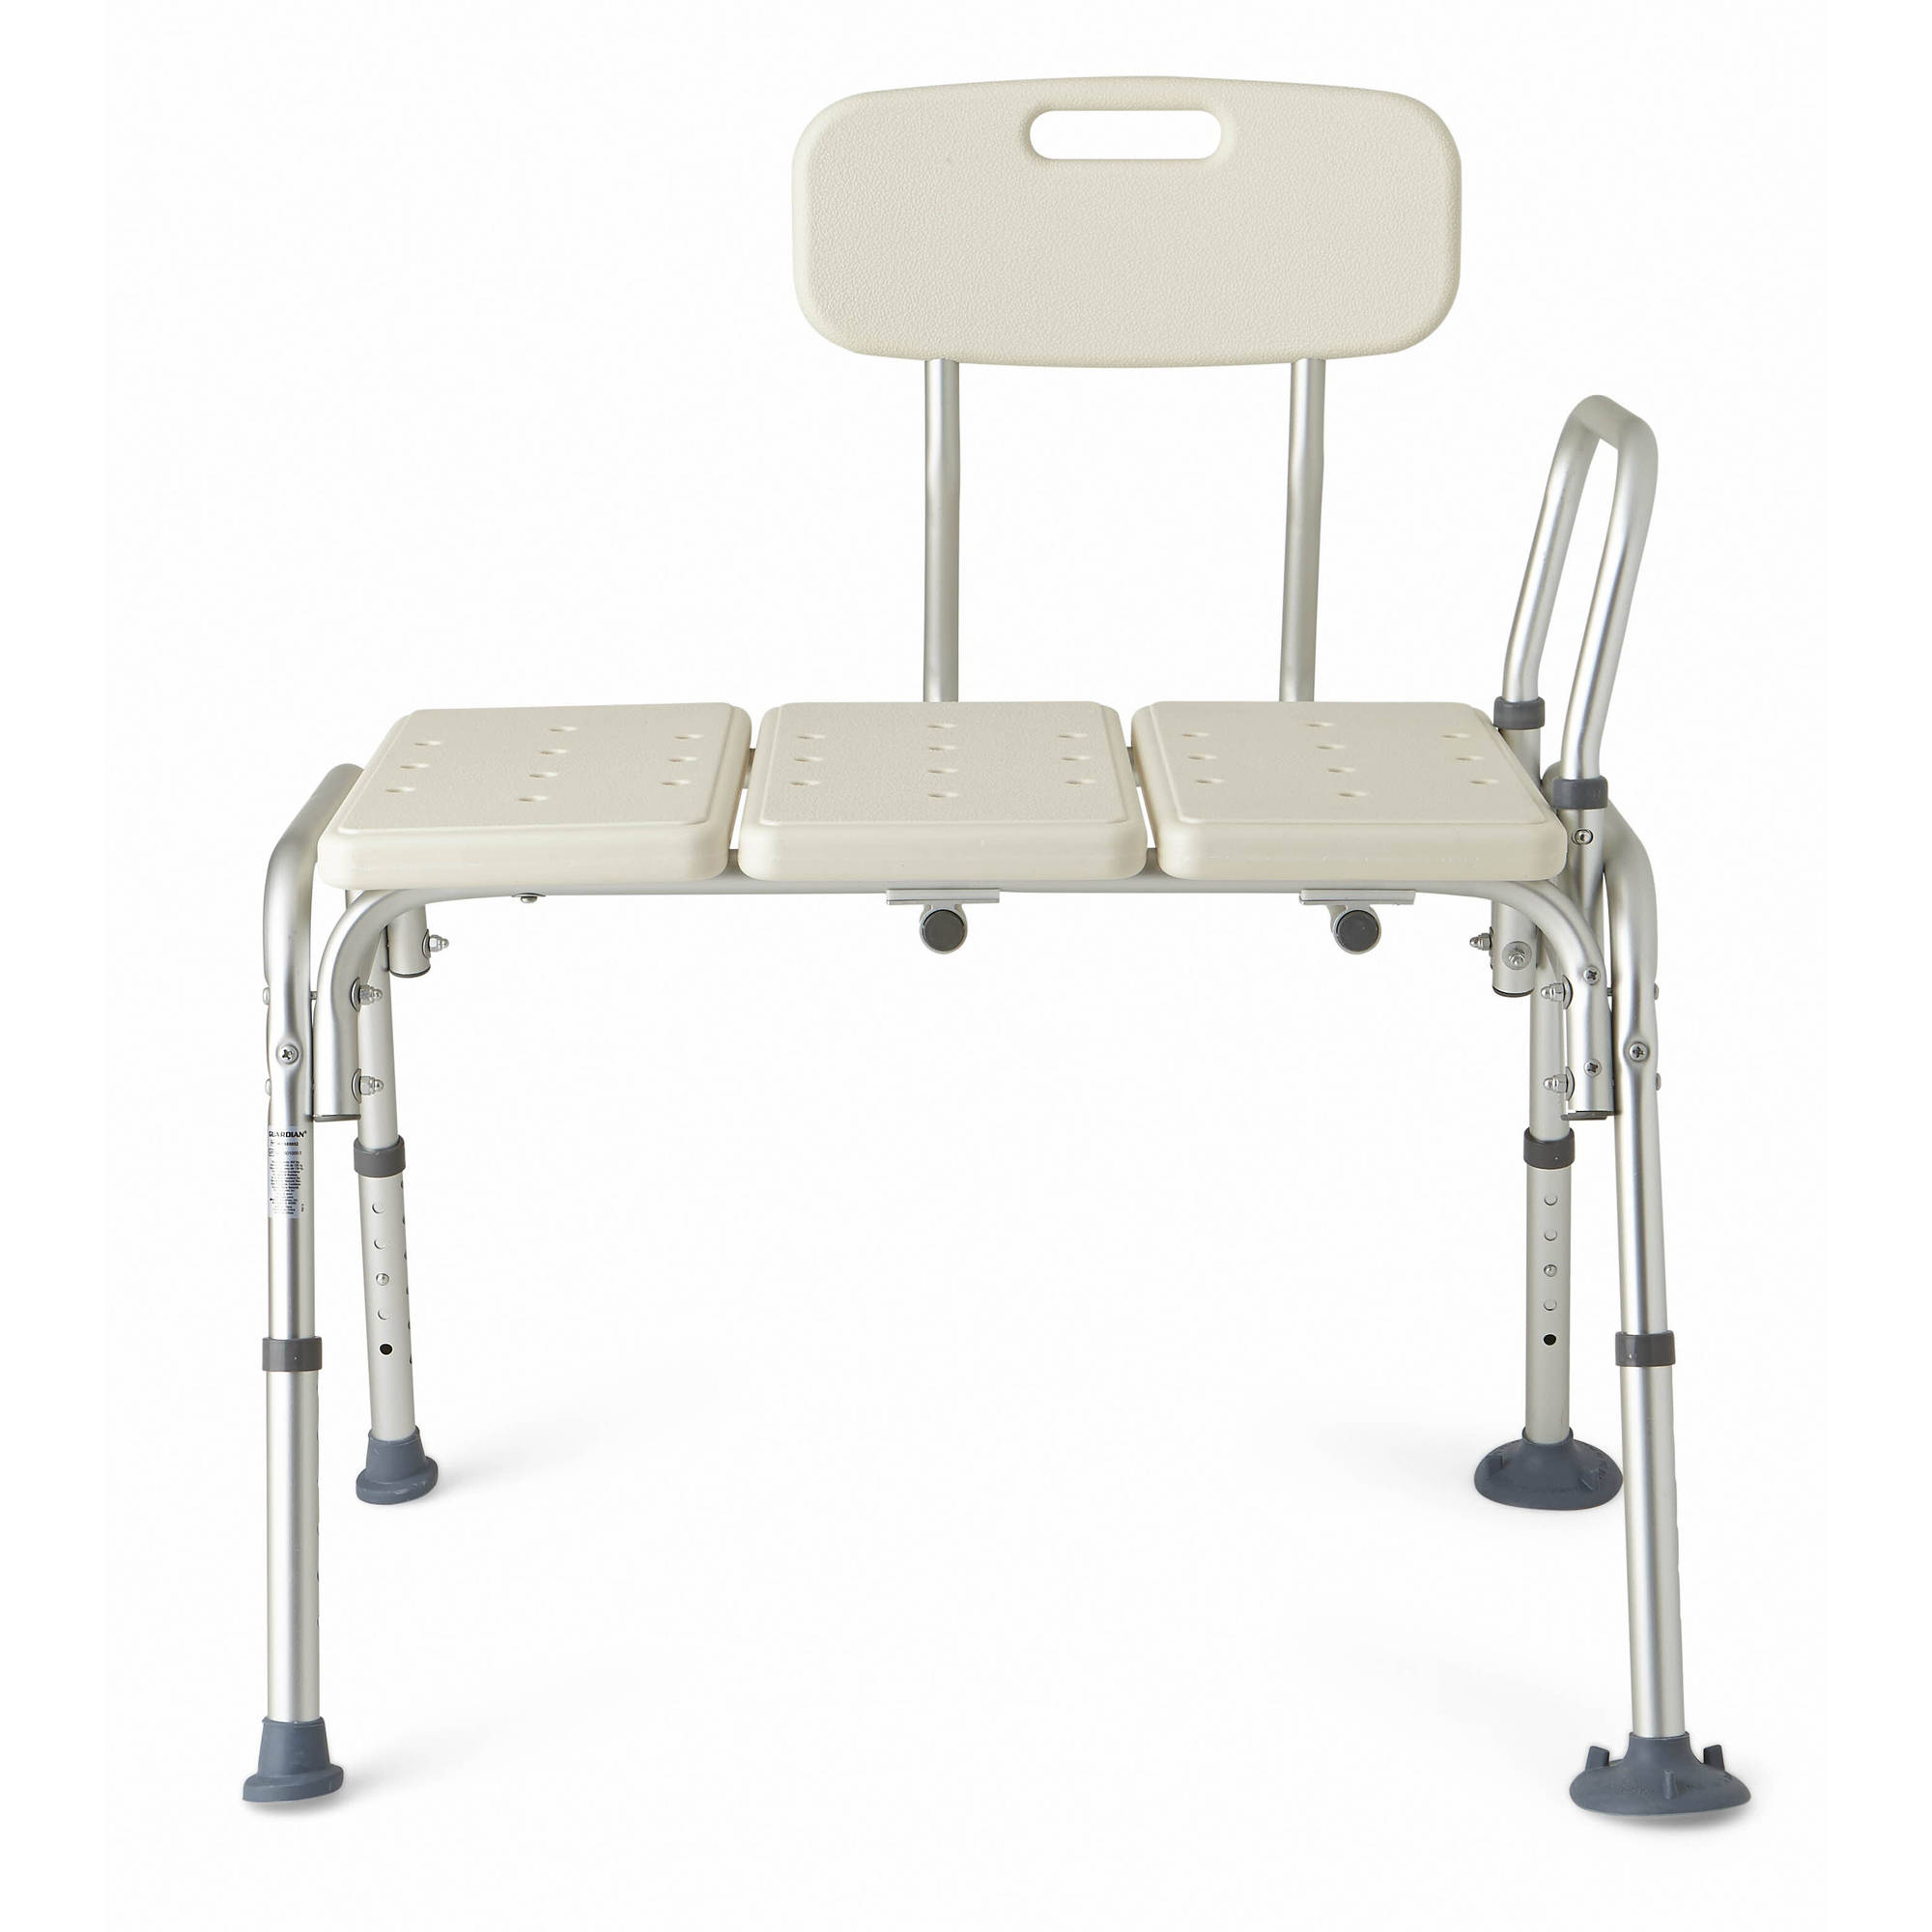 transfer shower chair unique baby chairs medline height adjustable bench with backrest tool free assembly walmart com